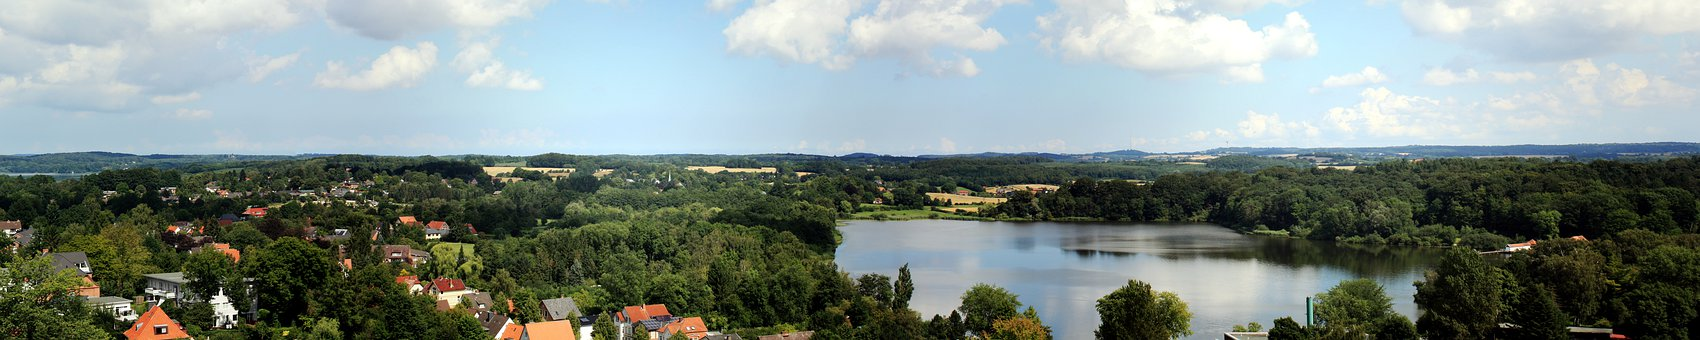 Panorama, Panoramic Image, Nature, Waters, Landscape